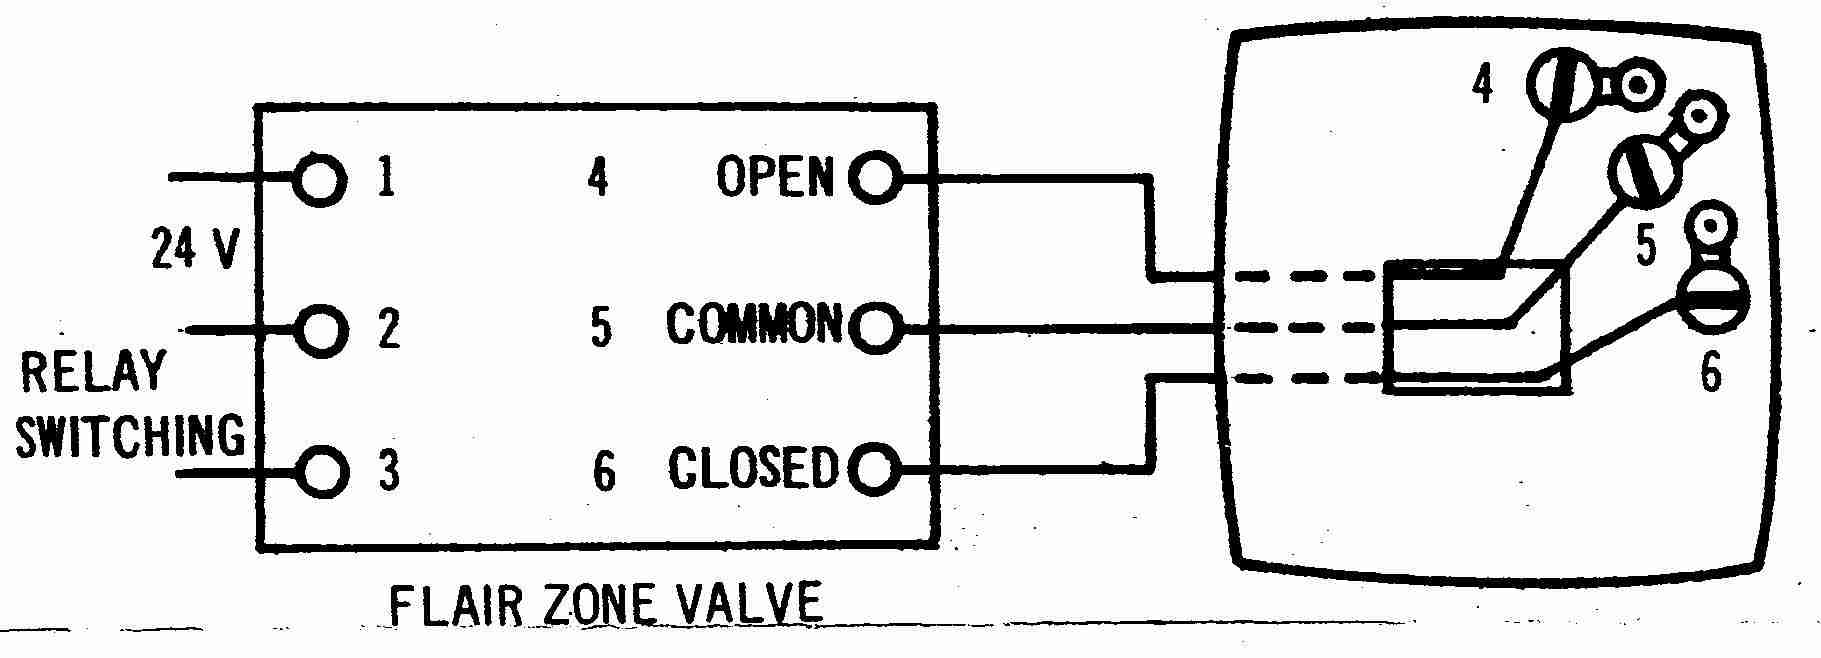 Thermostat Wiring Diagram White Rodgers 4 Wire Connector Room Diagrams For Hvac Systems